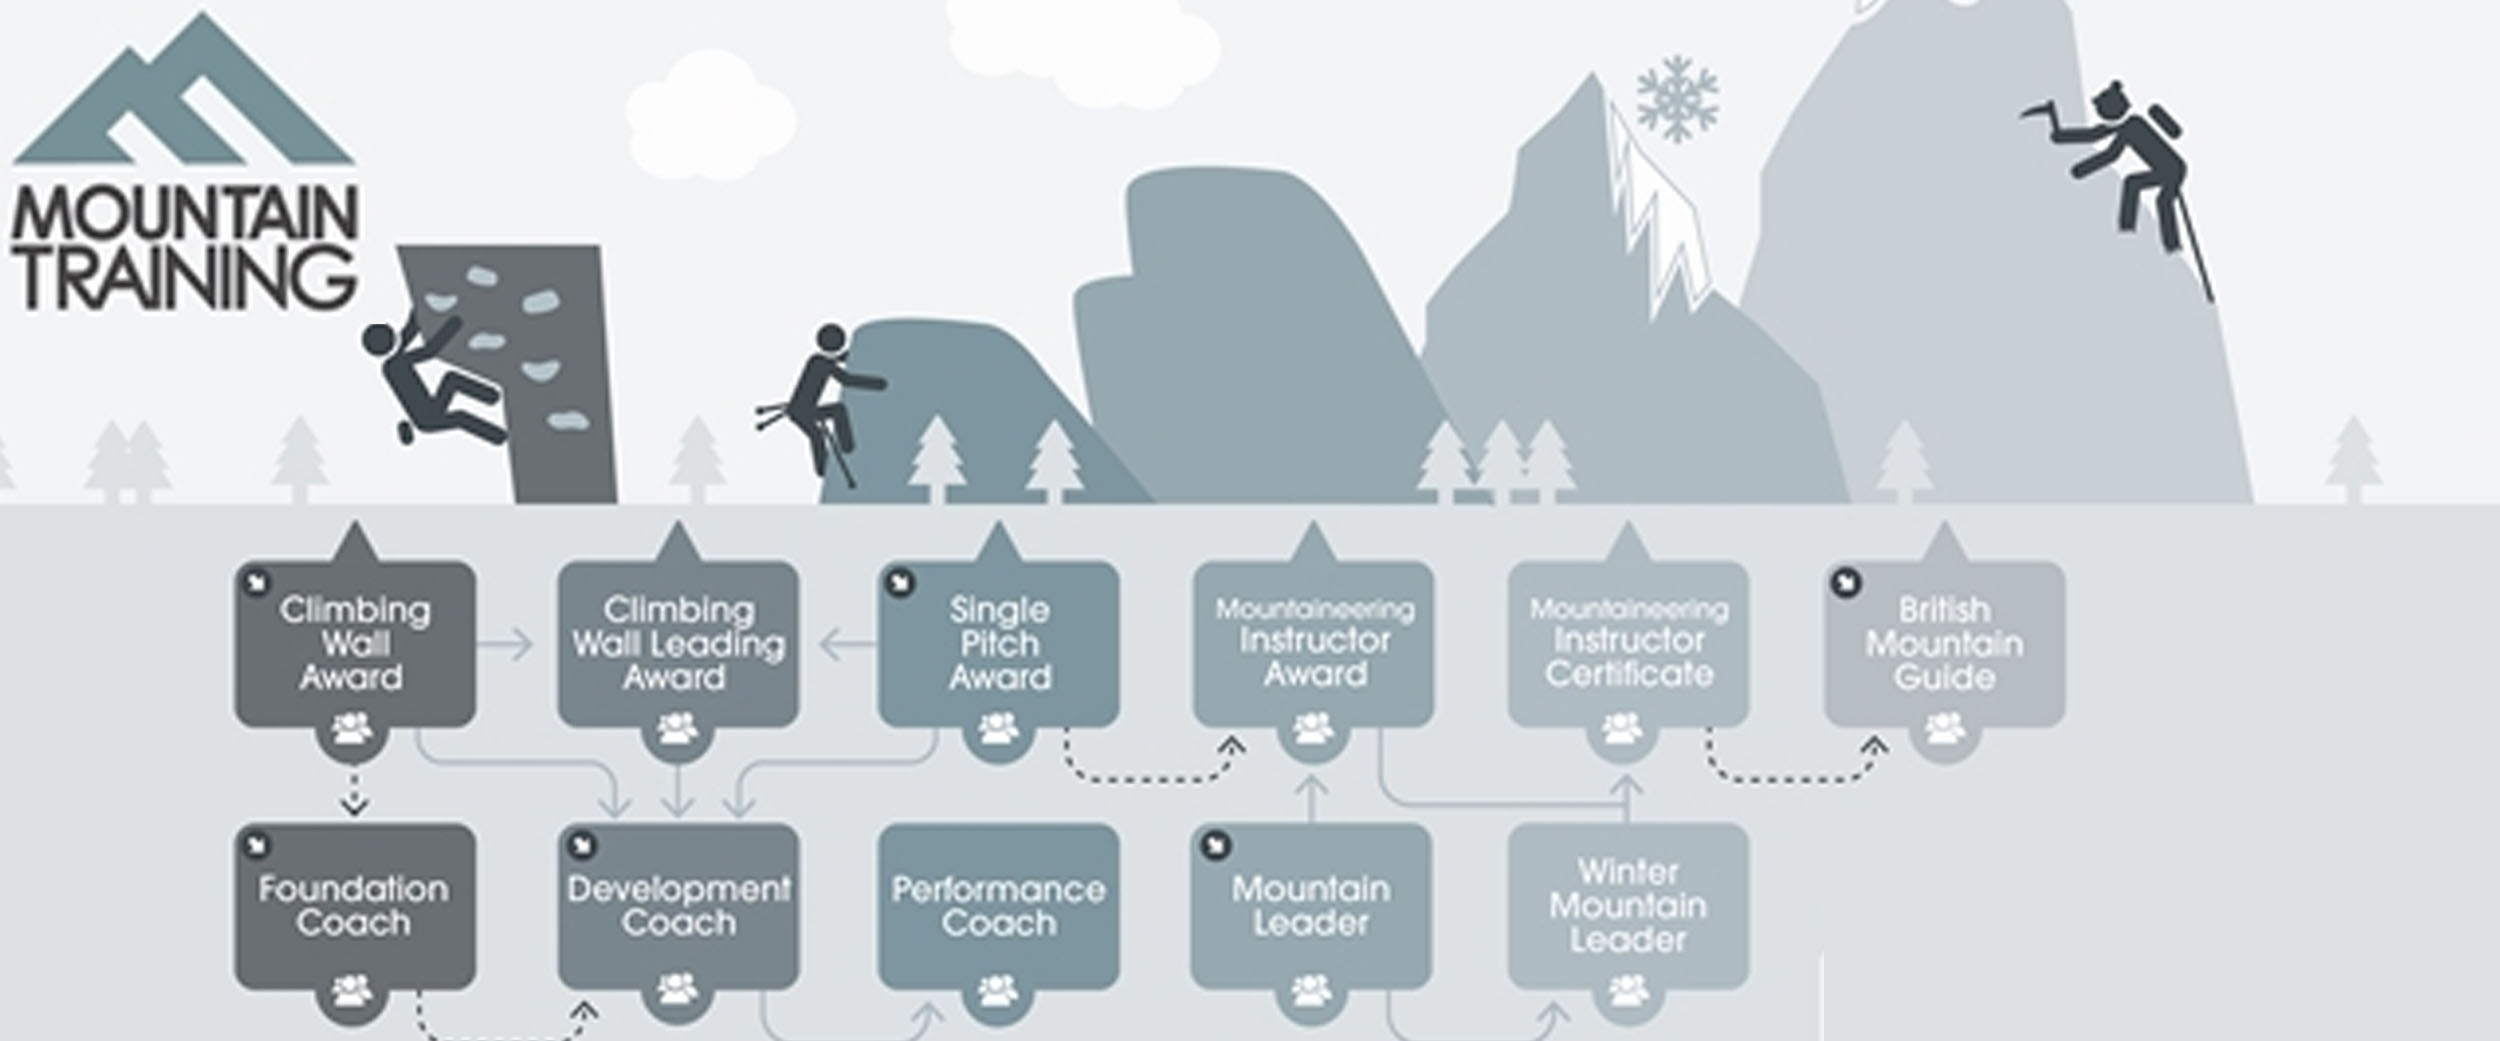 A flow chart showing the structure of the British climbing awards